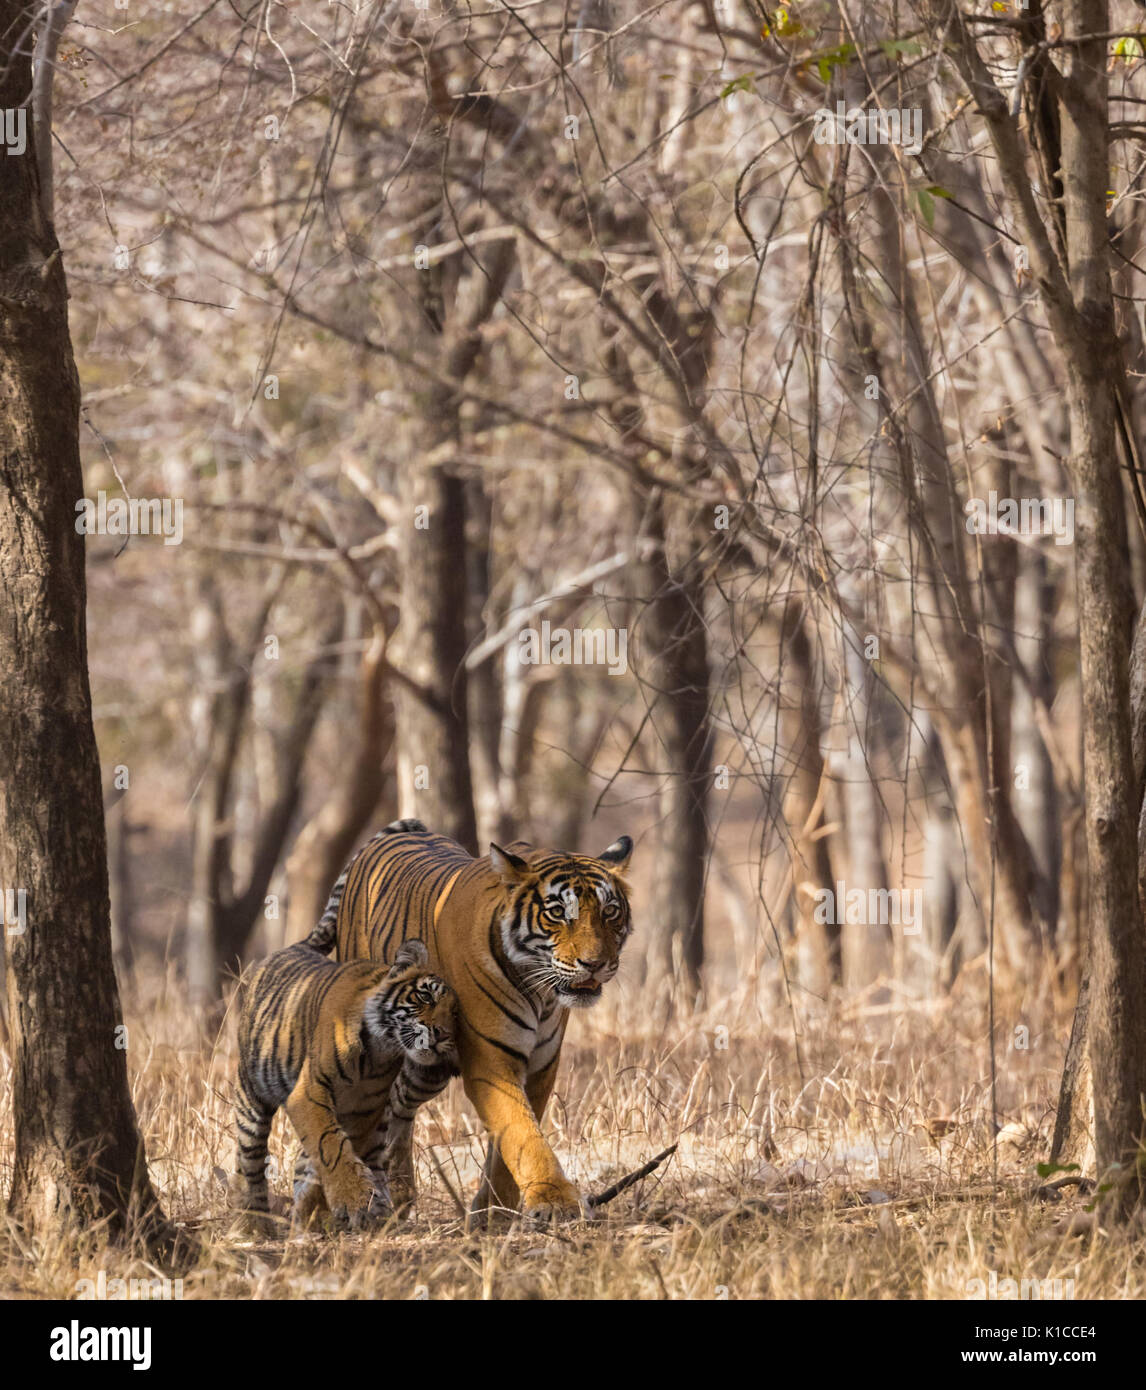 Tiger cub cuddling mother tigress in a beautiful vertical frame formed by dry treeline - Stock Image